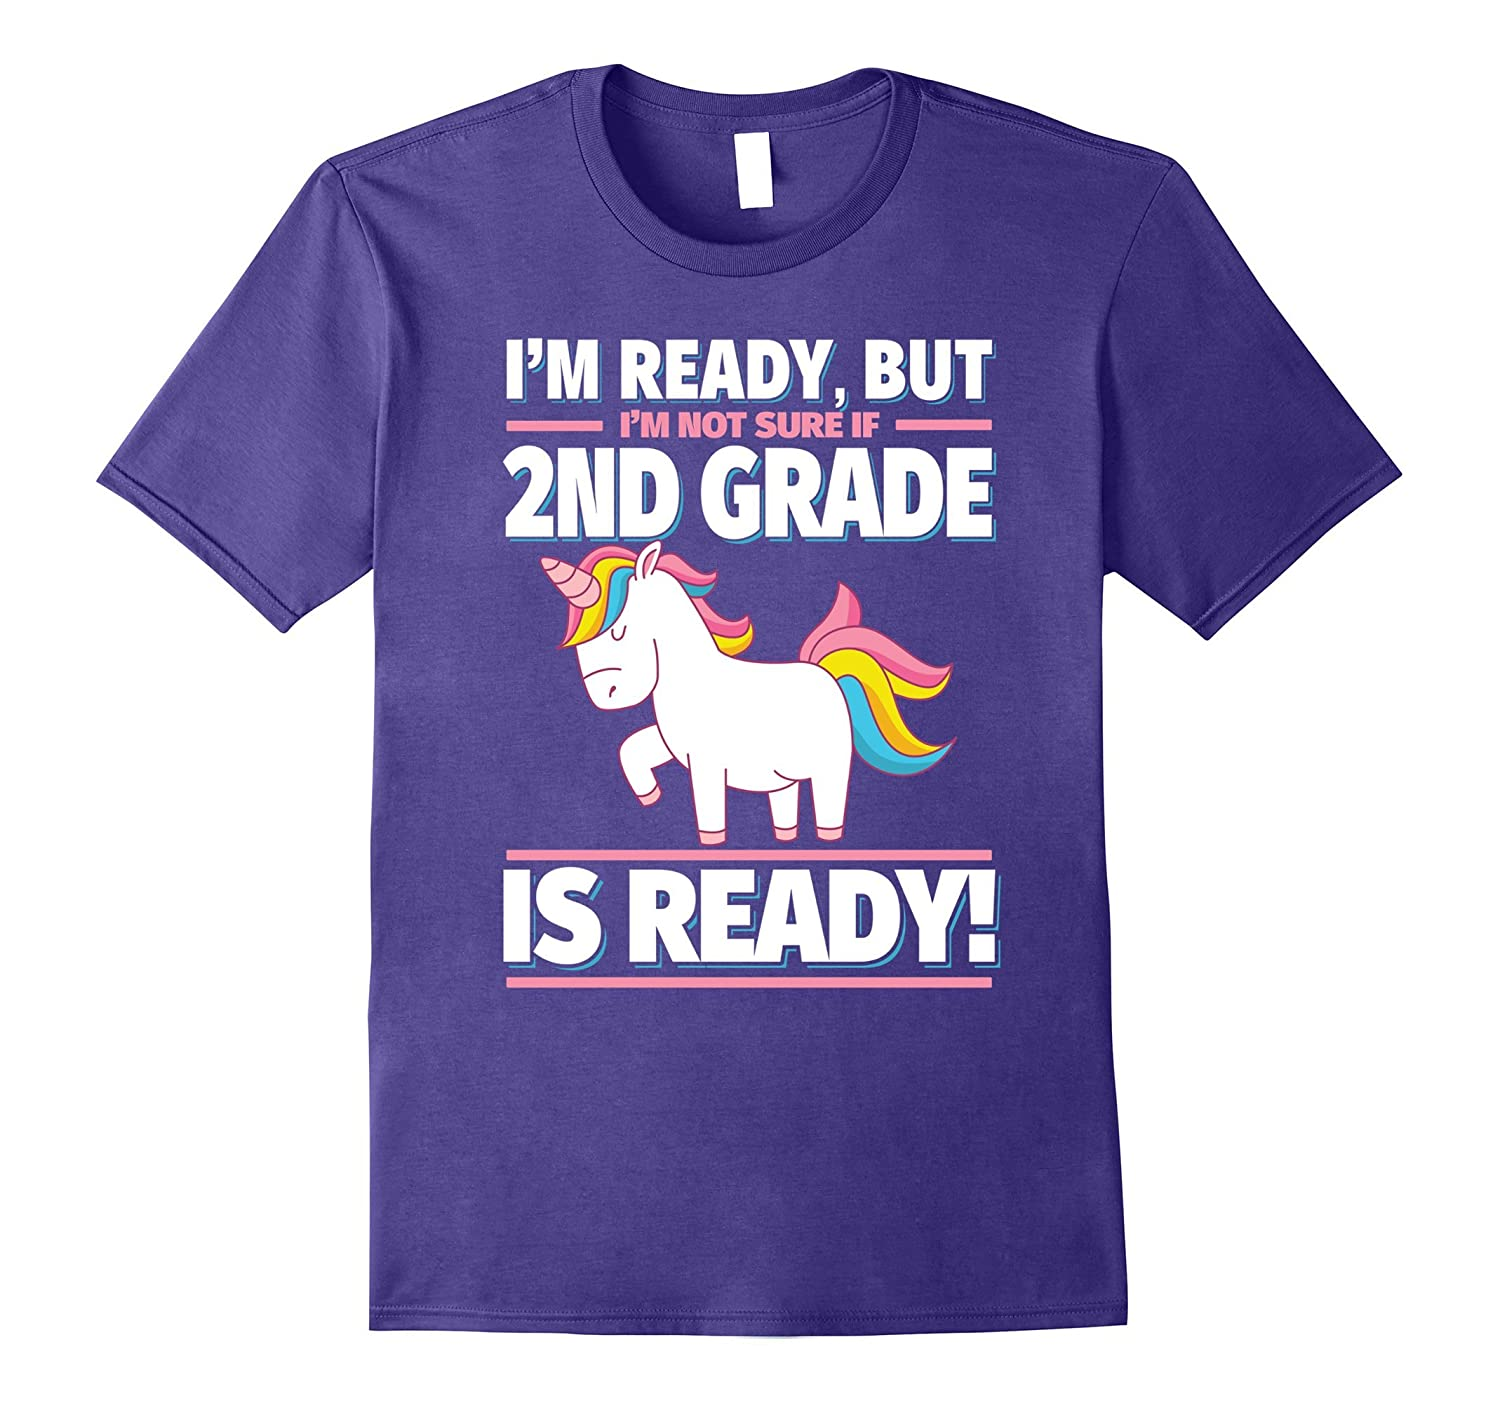 2nd Grade Back to School Unicorn Shirt - Is 2nd Grade Ready?-Art